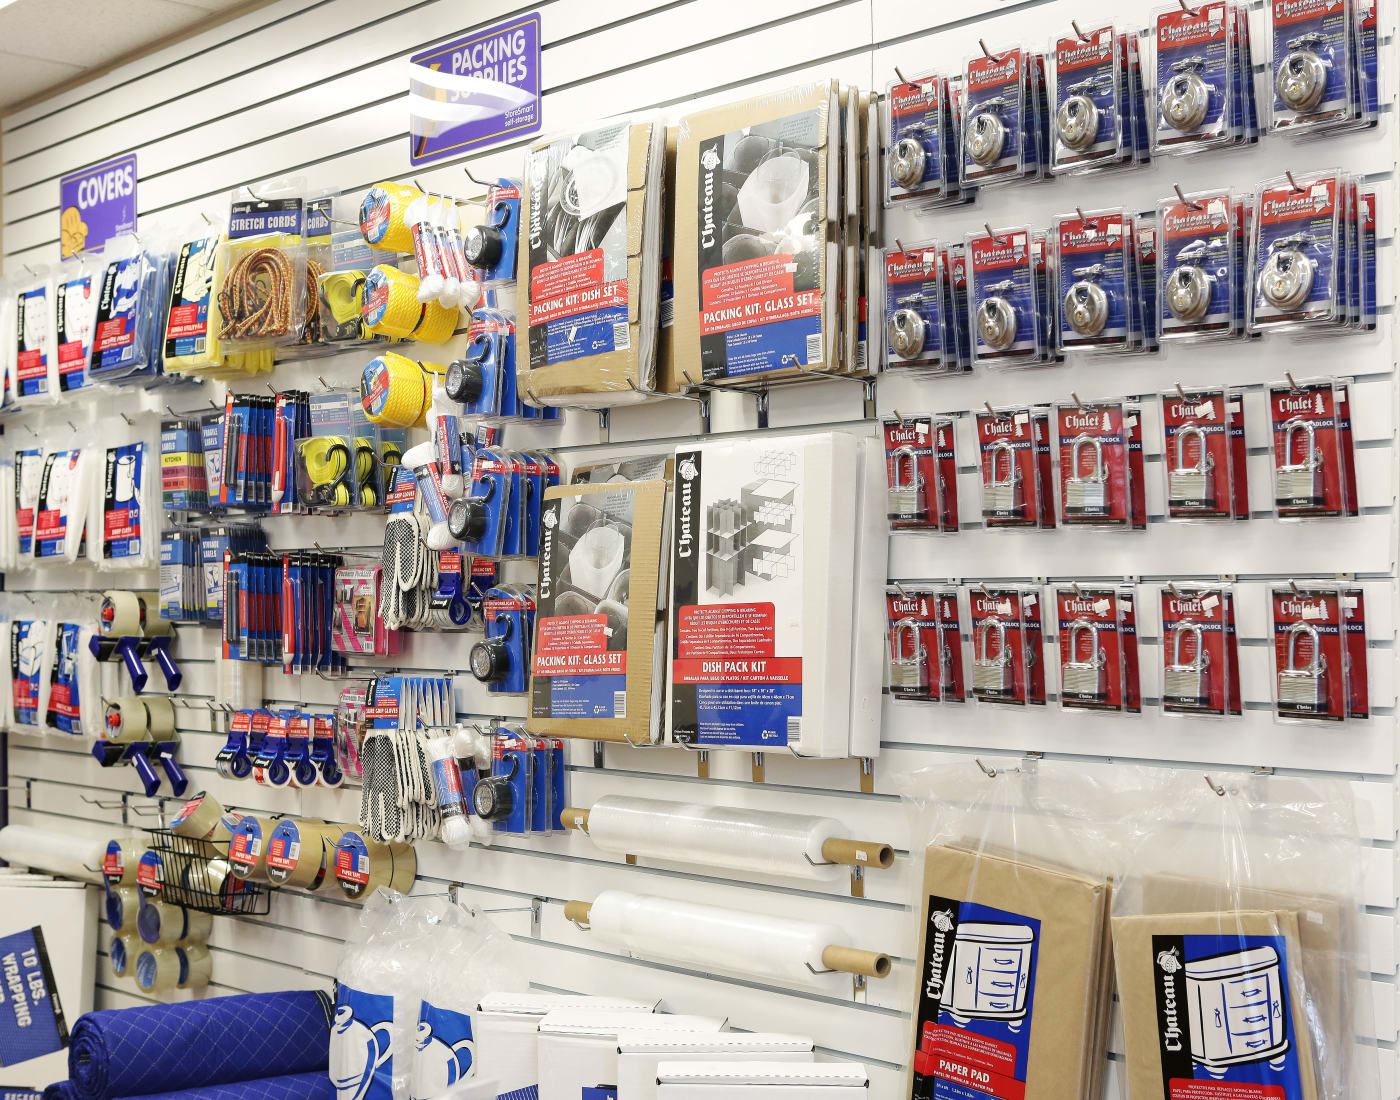 Packing and moving supplies for sale at StoreSmart Self-Storage in Raleigh, North Carolina